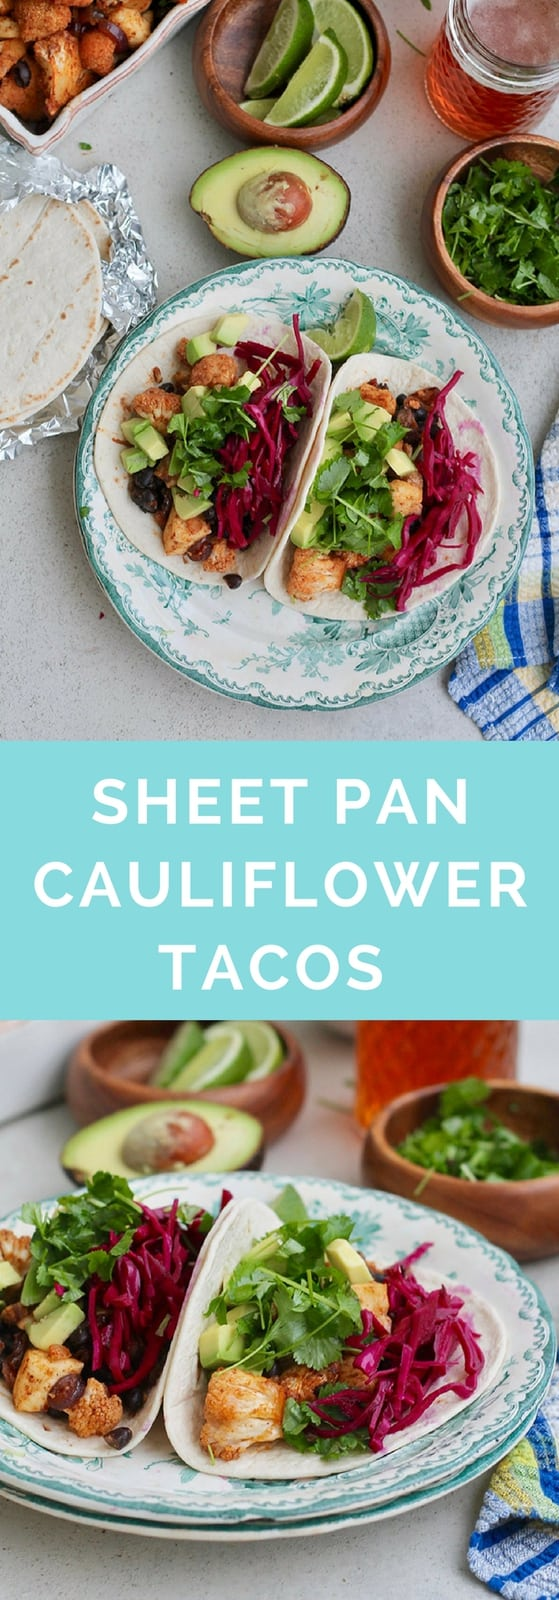 Sheet Pan Cauliflower Tacos with Halloumi and Black Beans - easy enough to whip up for a weeknight dinner, and delicious enough to impress a crowd. Easily vegan and gluten free.  #vegetarian #tacos #recipe #sheetpan #onepan #mexican #halloumi #beans